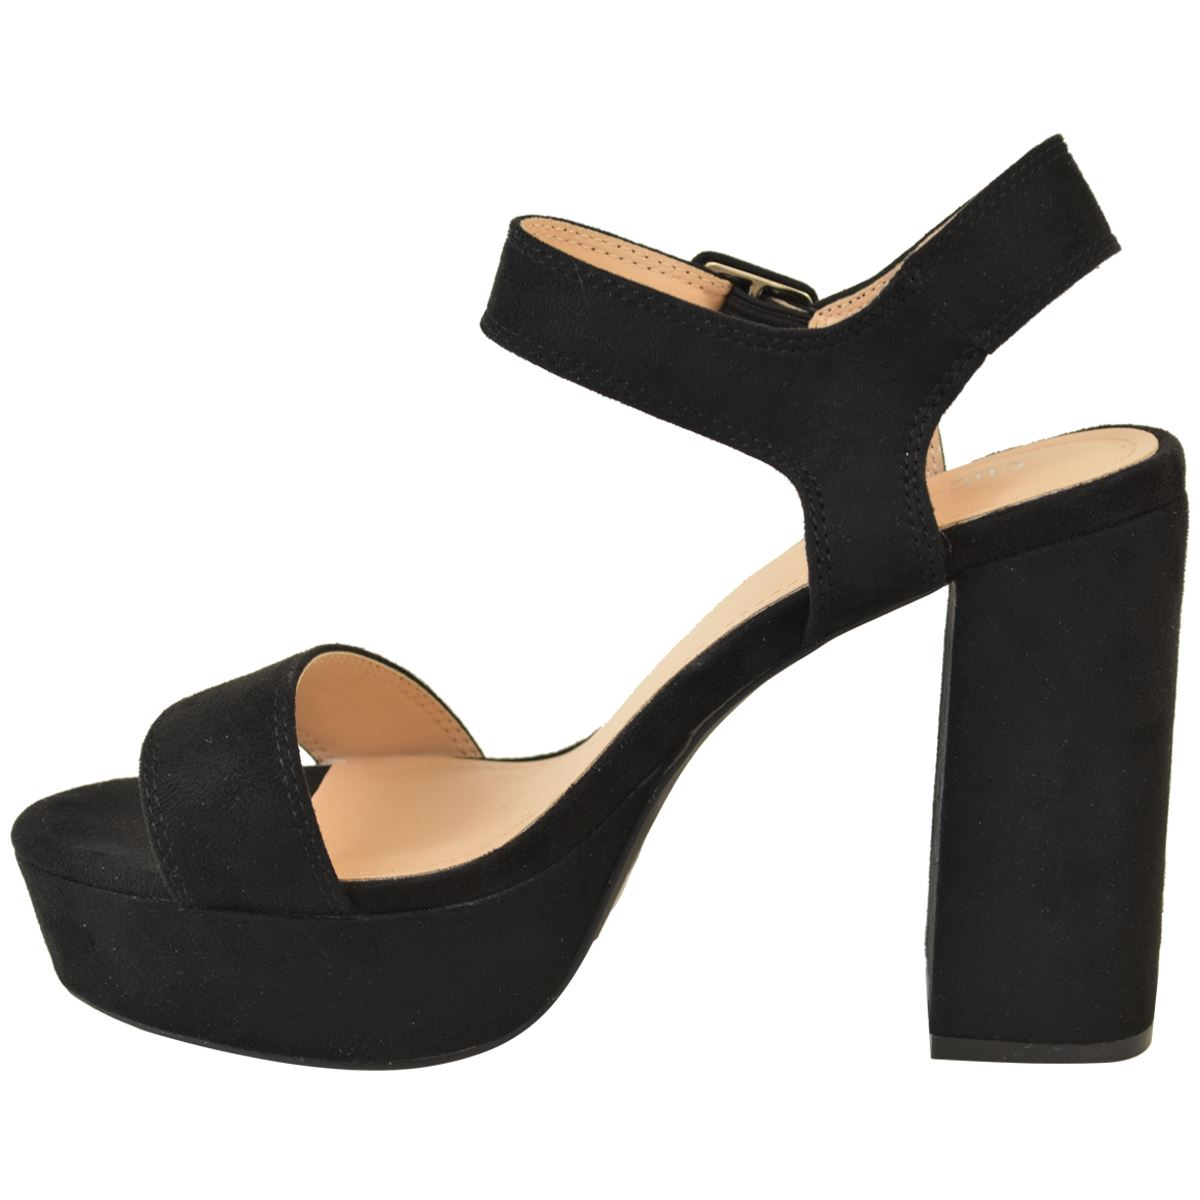 New-Womens-Summer-Platform-High-Heel-Sandals-Ladies-Open-Toe-Strappy-Party-Shoes thumbnail 25